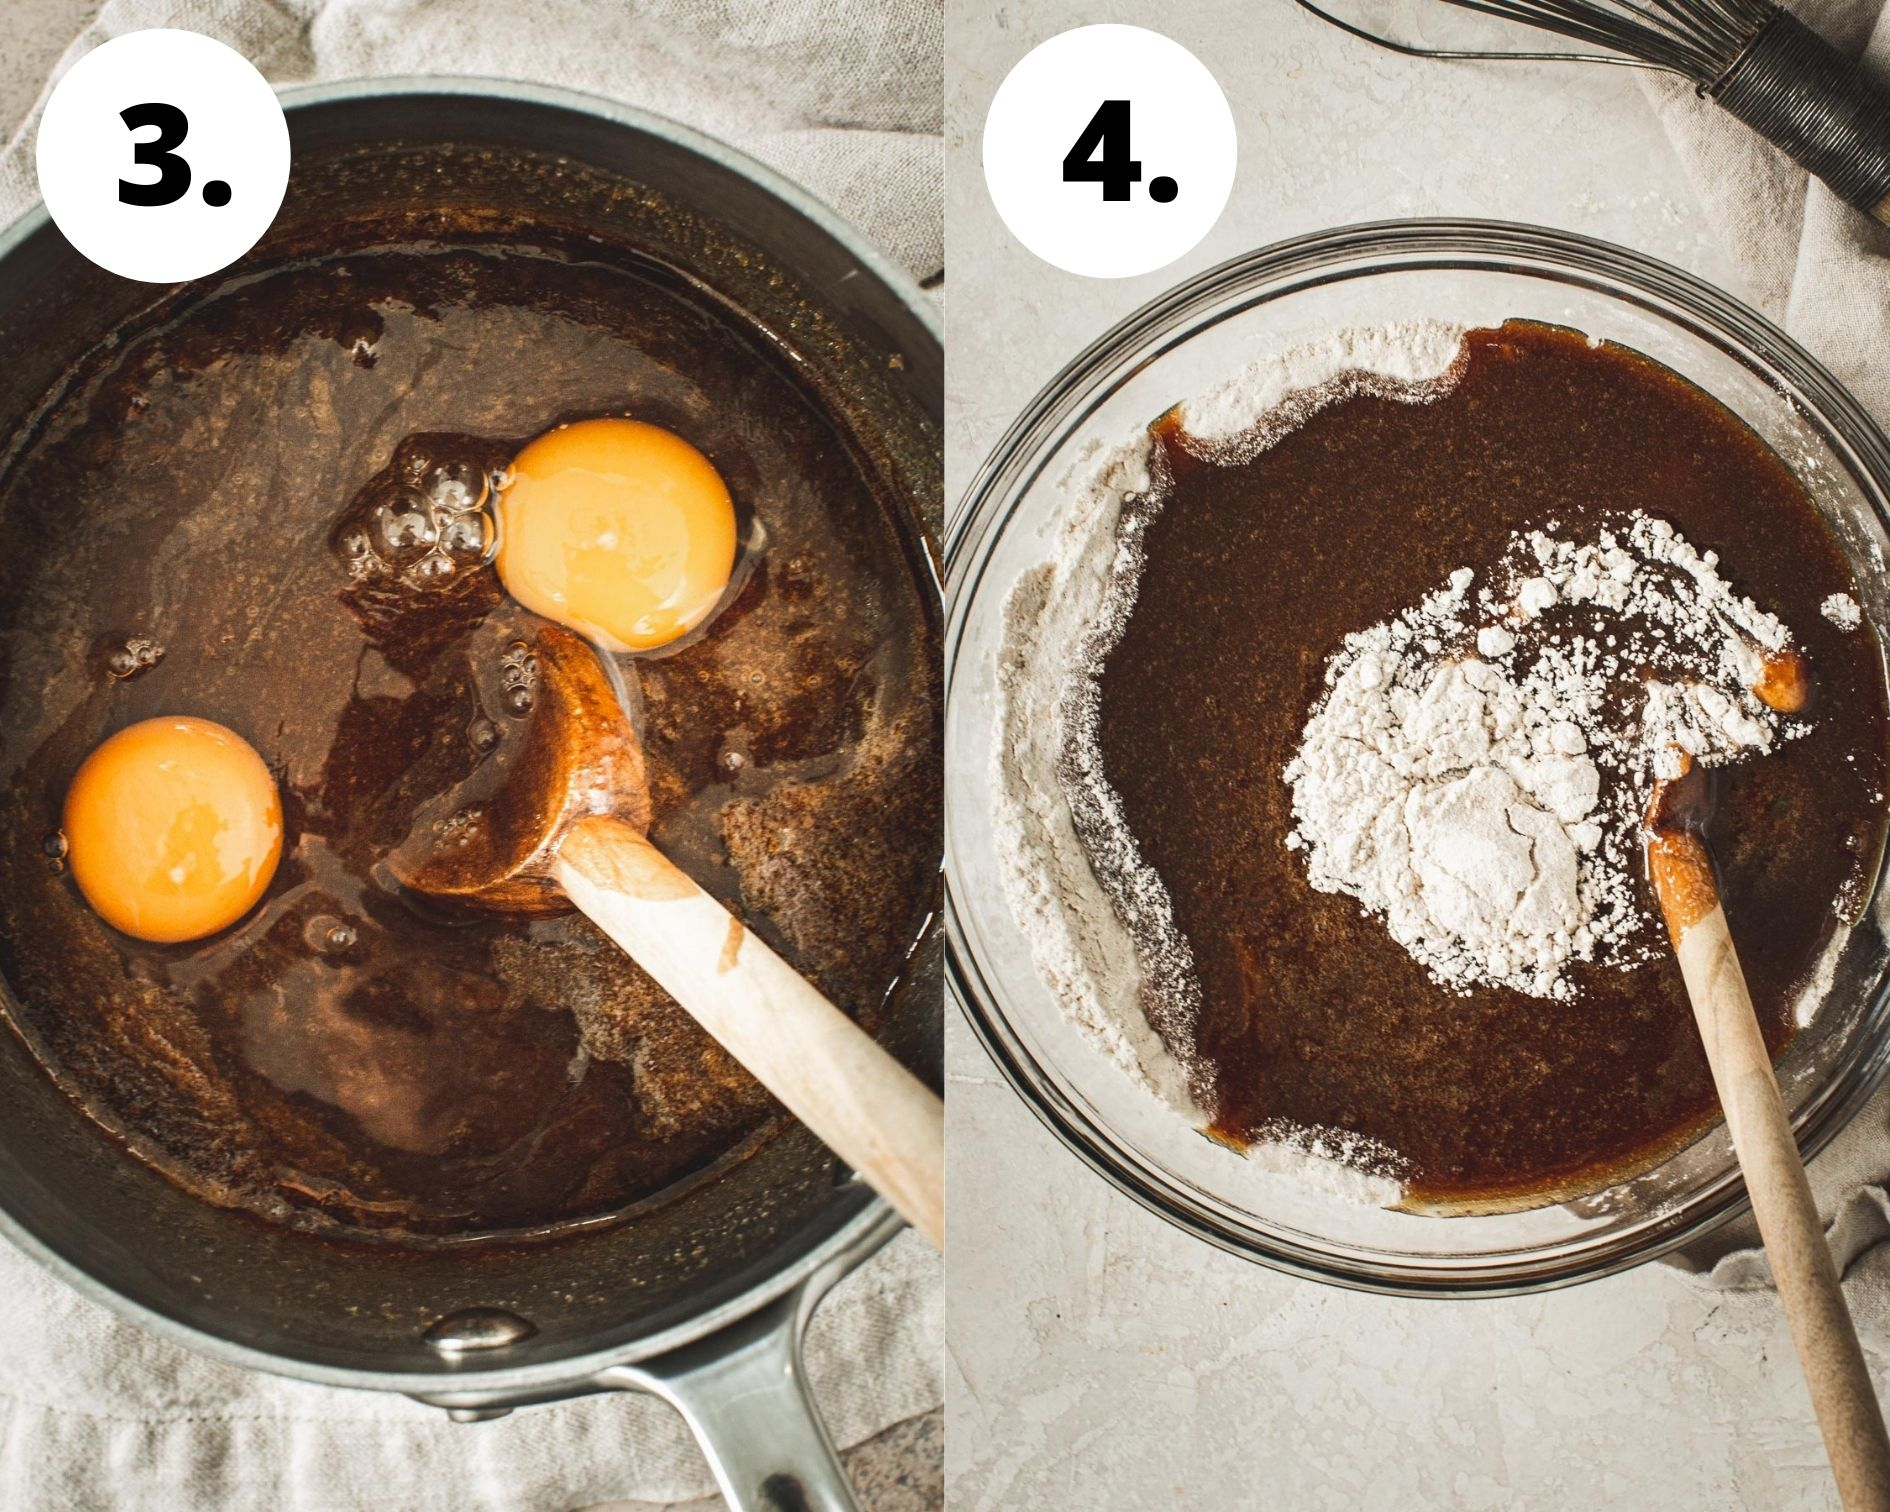 Cinnamon squares process steps 3 and 4.